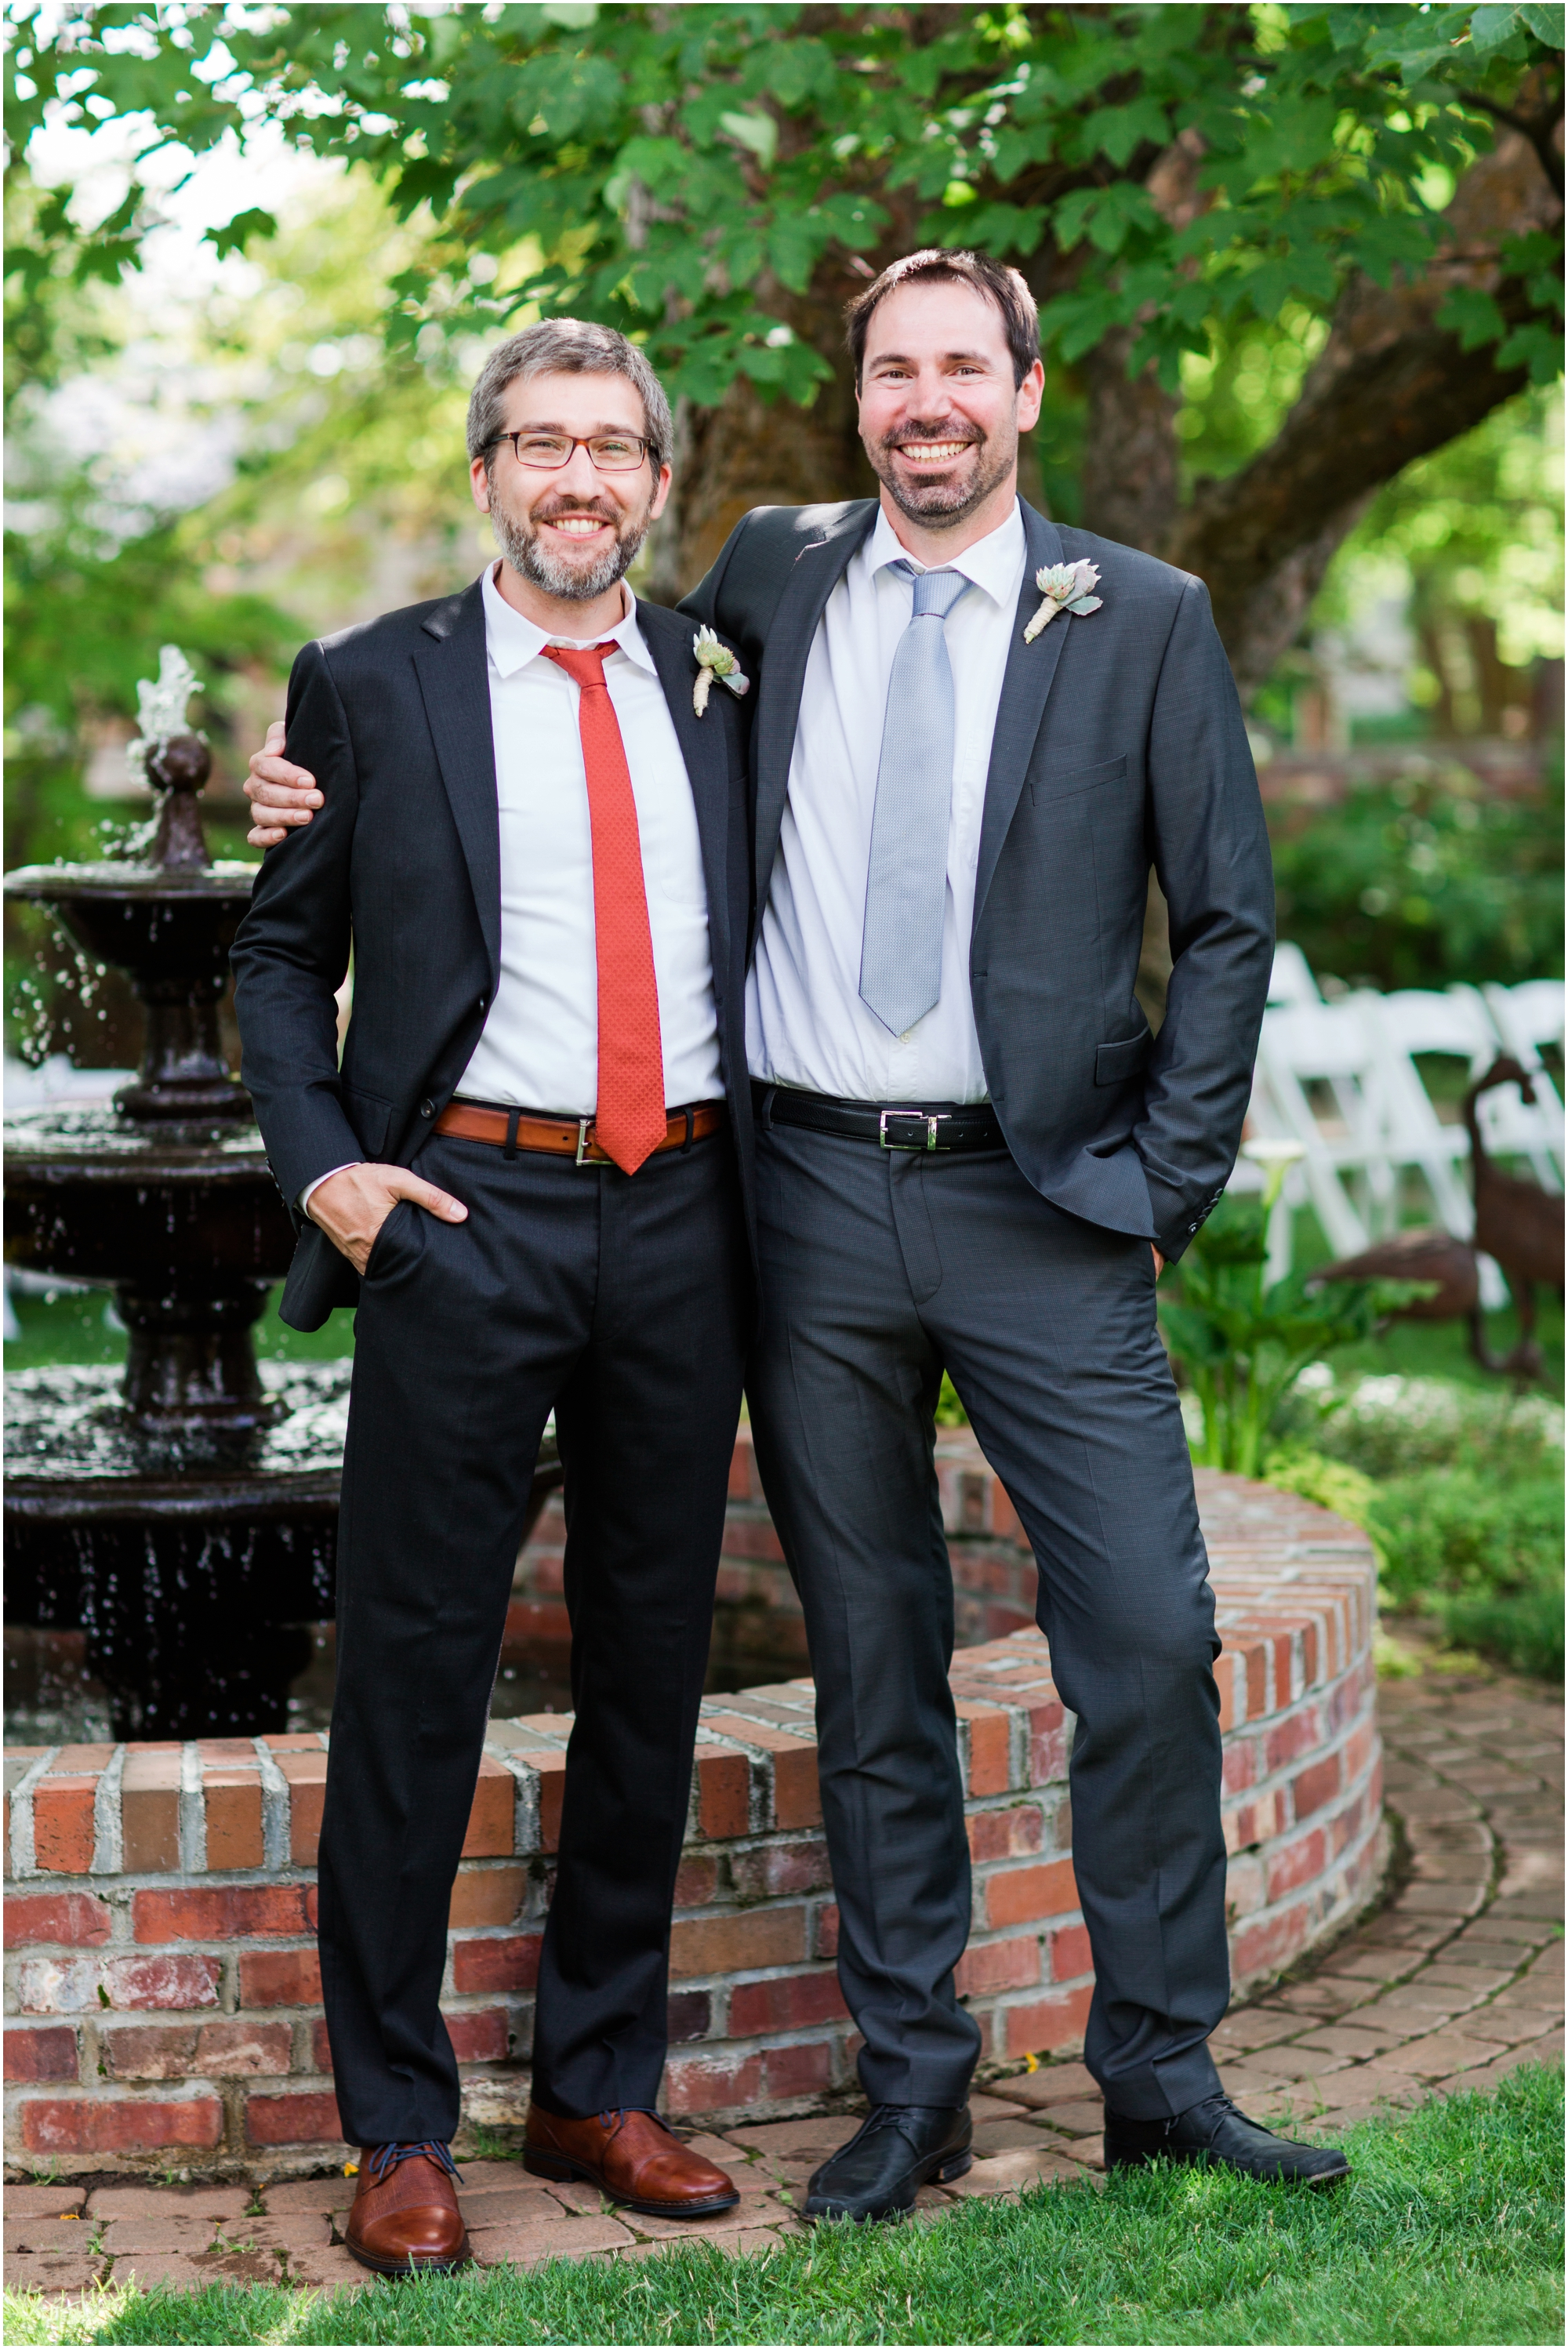 Garden wedding in Ellensburg, WA. Photos by Briana Calderon Photography based in the greater Seattle-Tacoma Area._1325.jpg